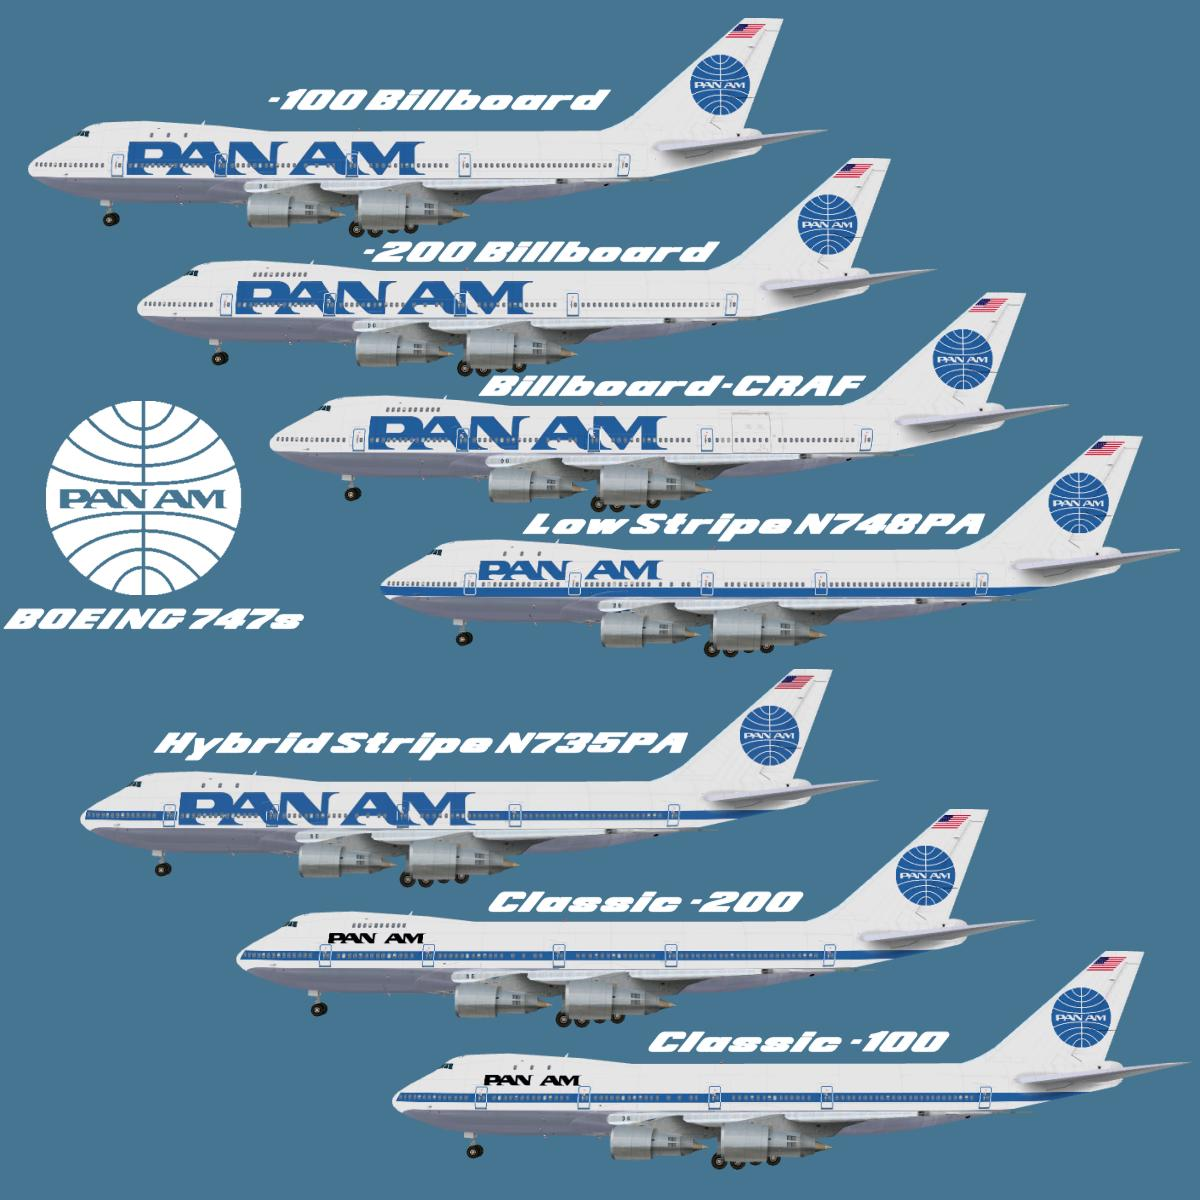 Pan Am's Boeing 746 fleet.